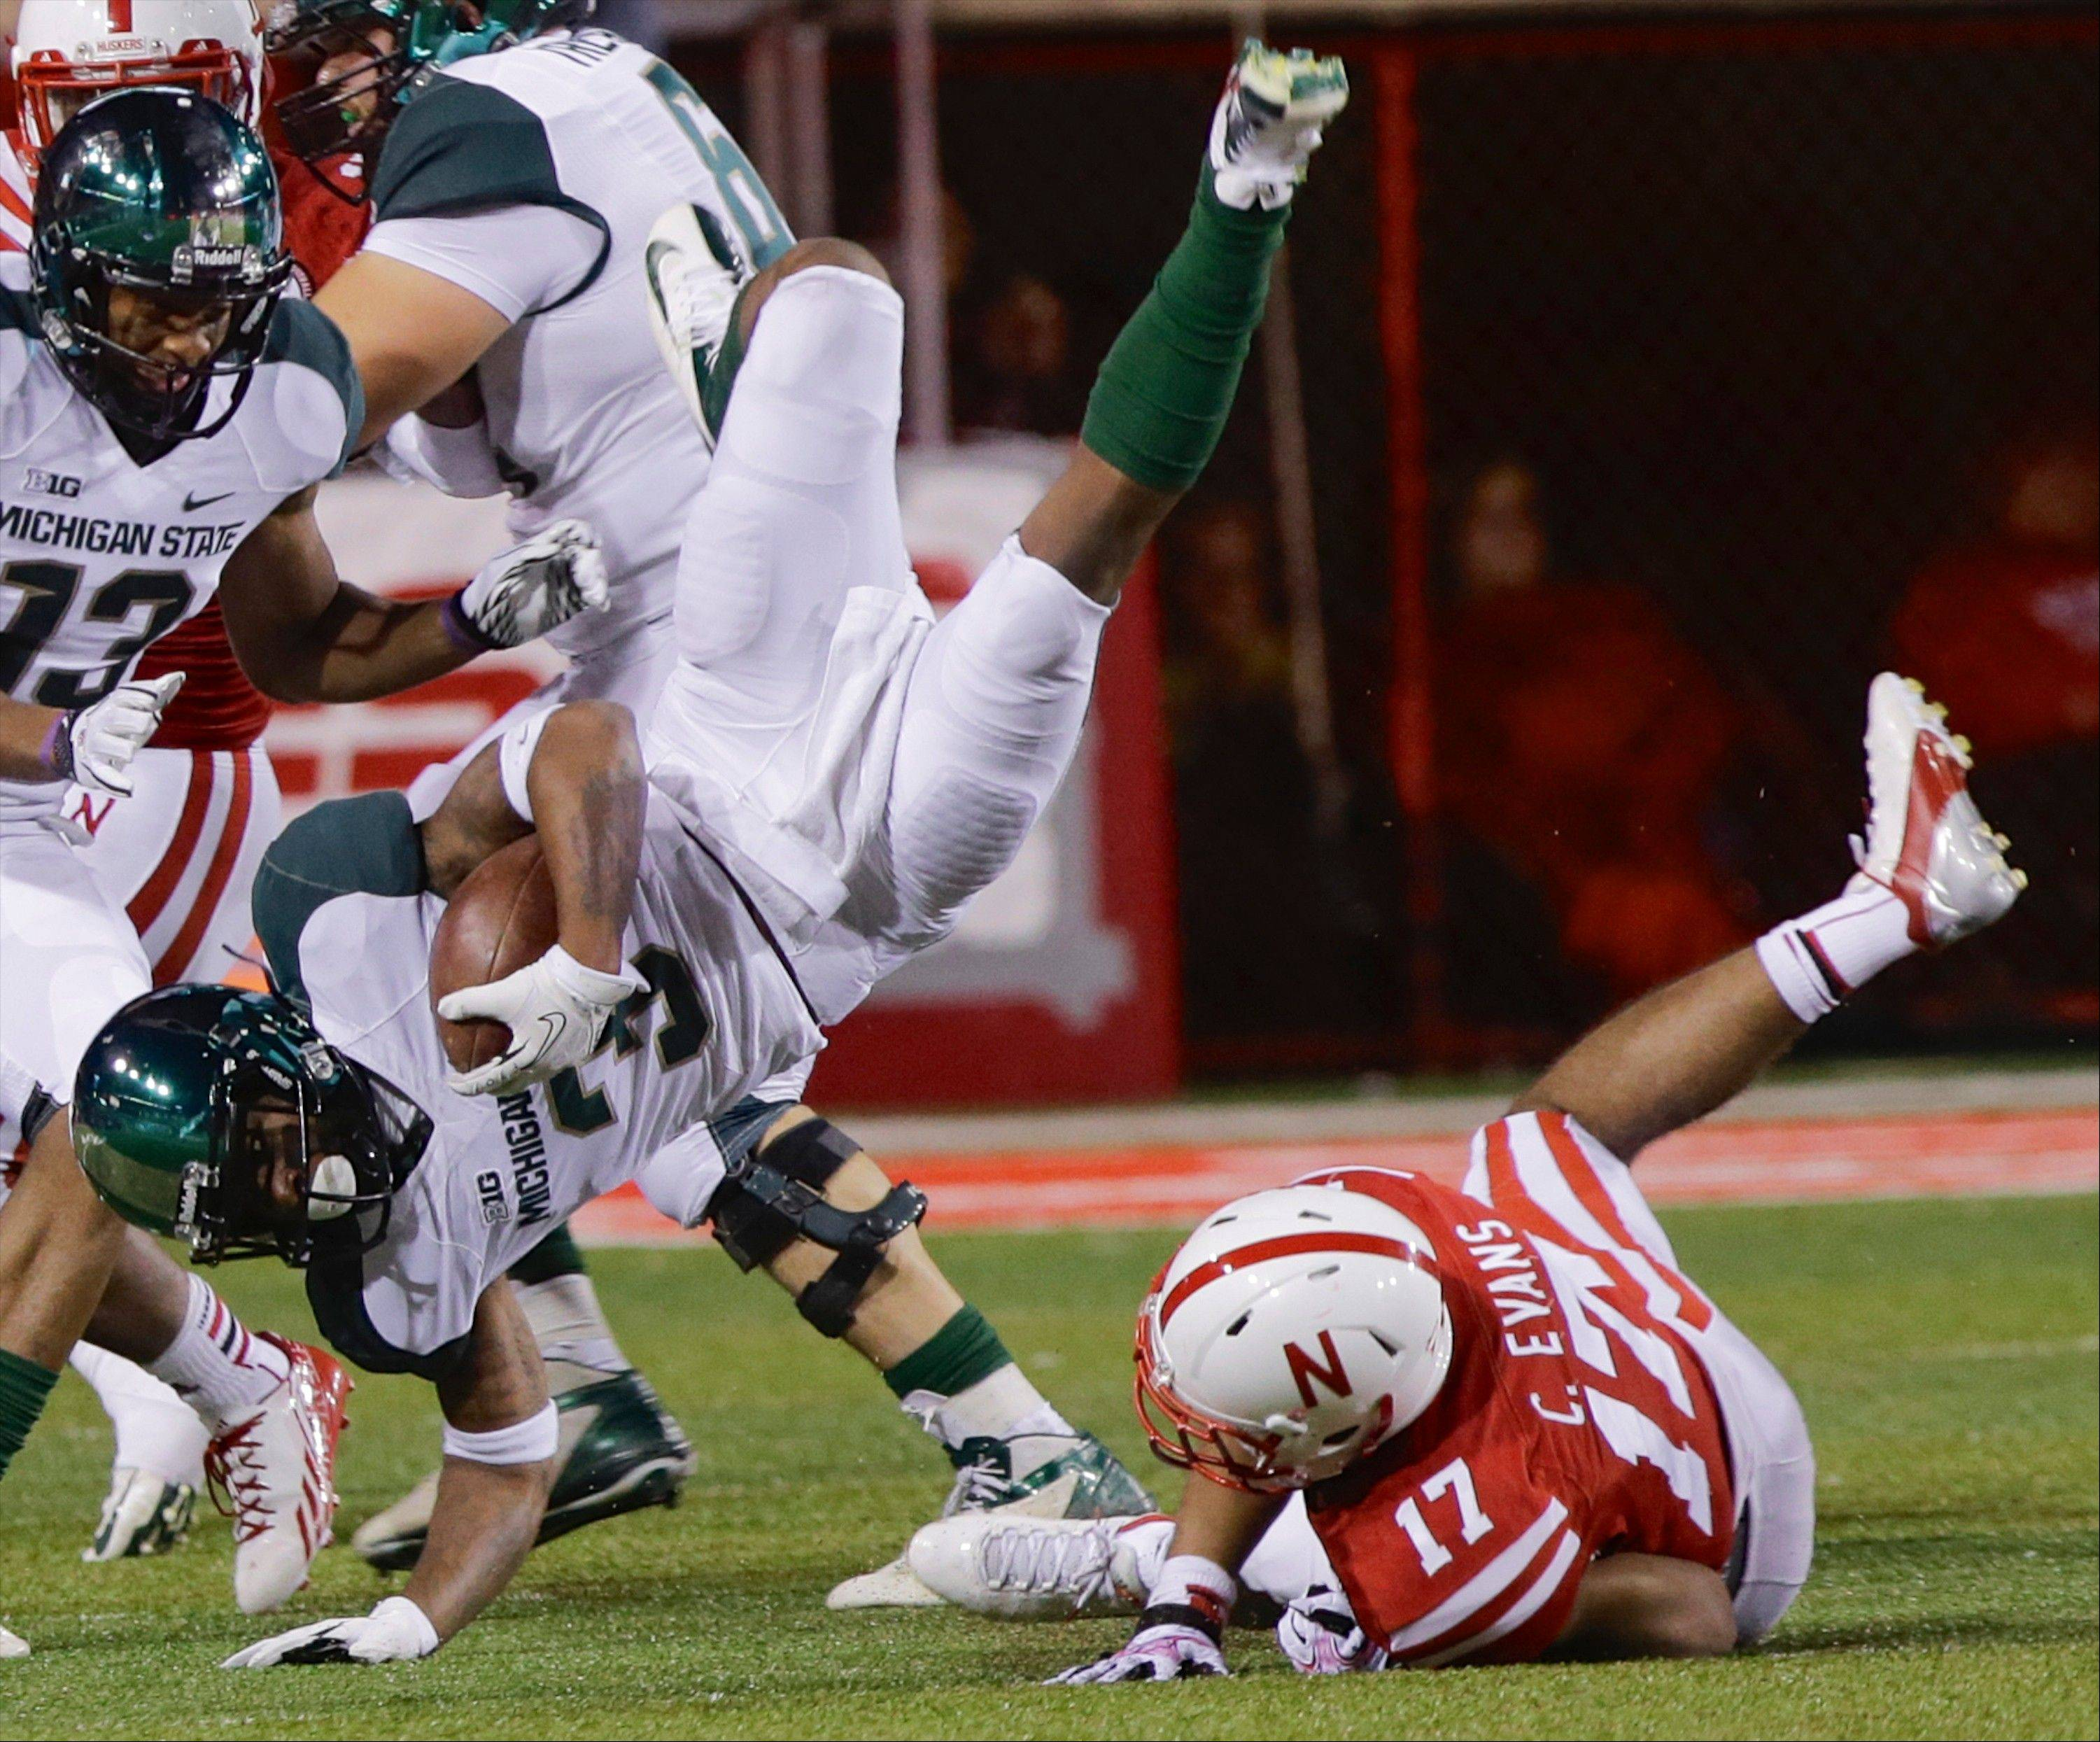 Michigan State wide receiver Macgarrett Kings (3) is upended by Nebraska cornerback Ciante Evans (17) during Saturday�s game in Lincoln, Neb. Michigan State won 41-28.